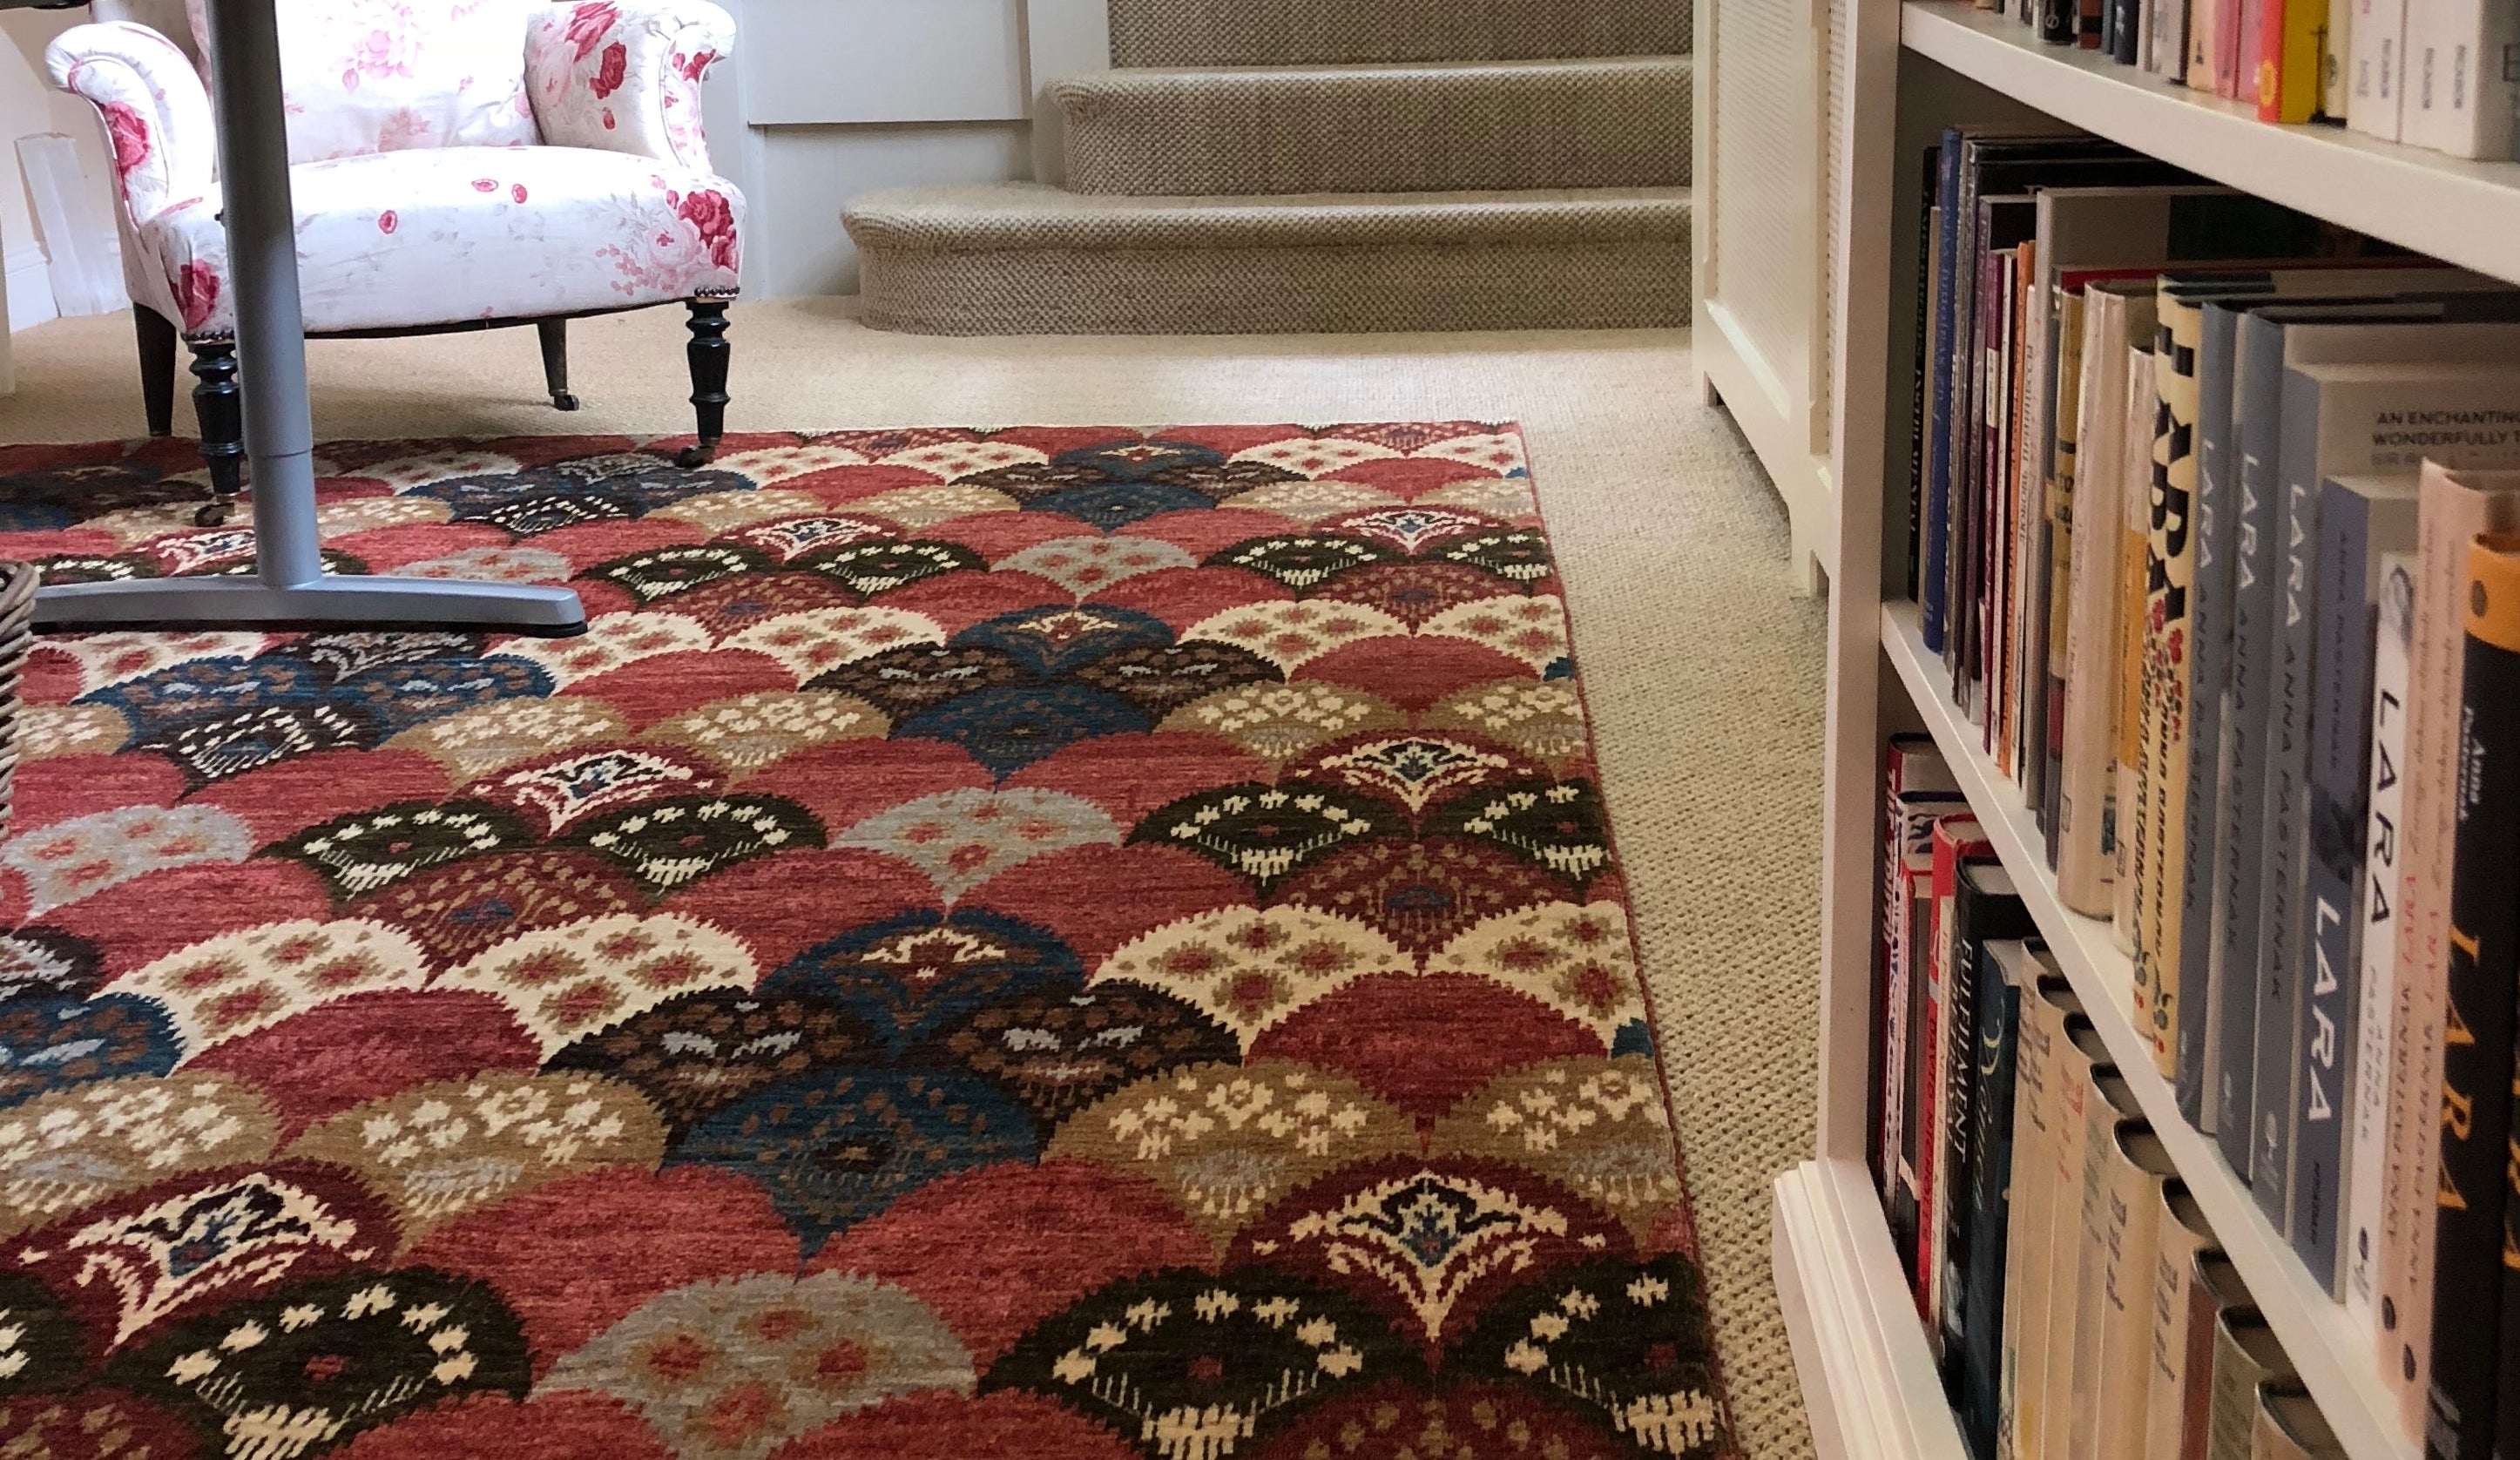 Contemporary handmade rugs London and henley on Thames-Marlow